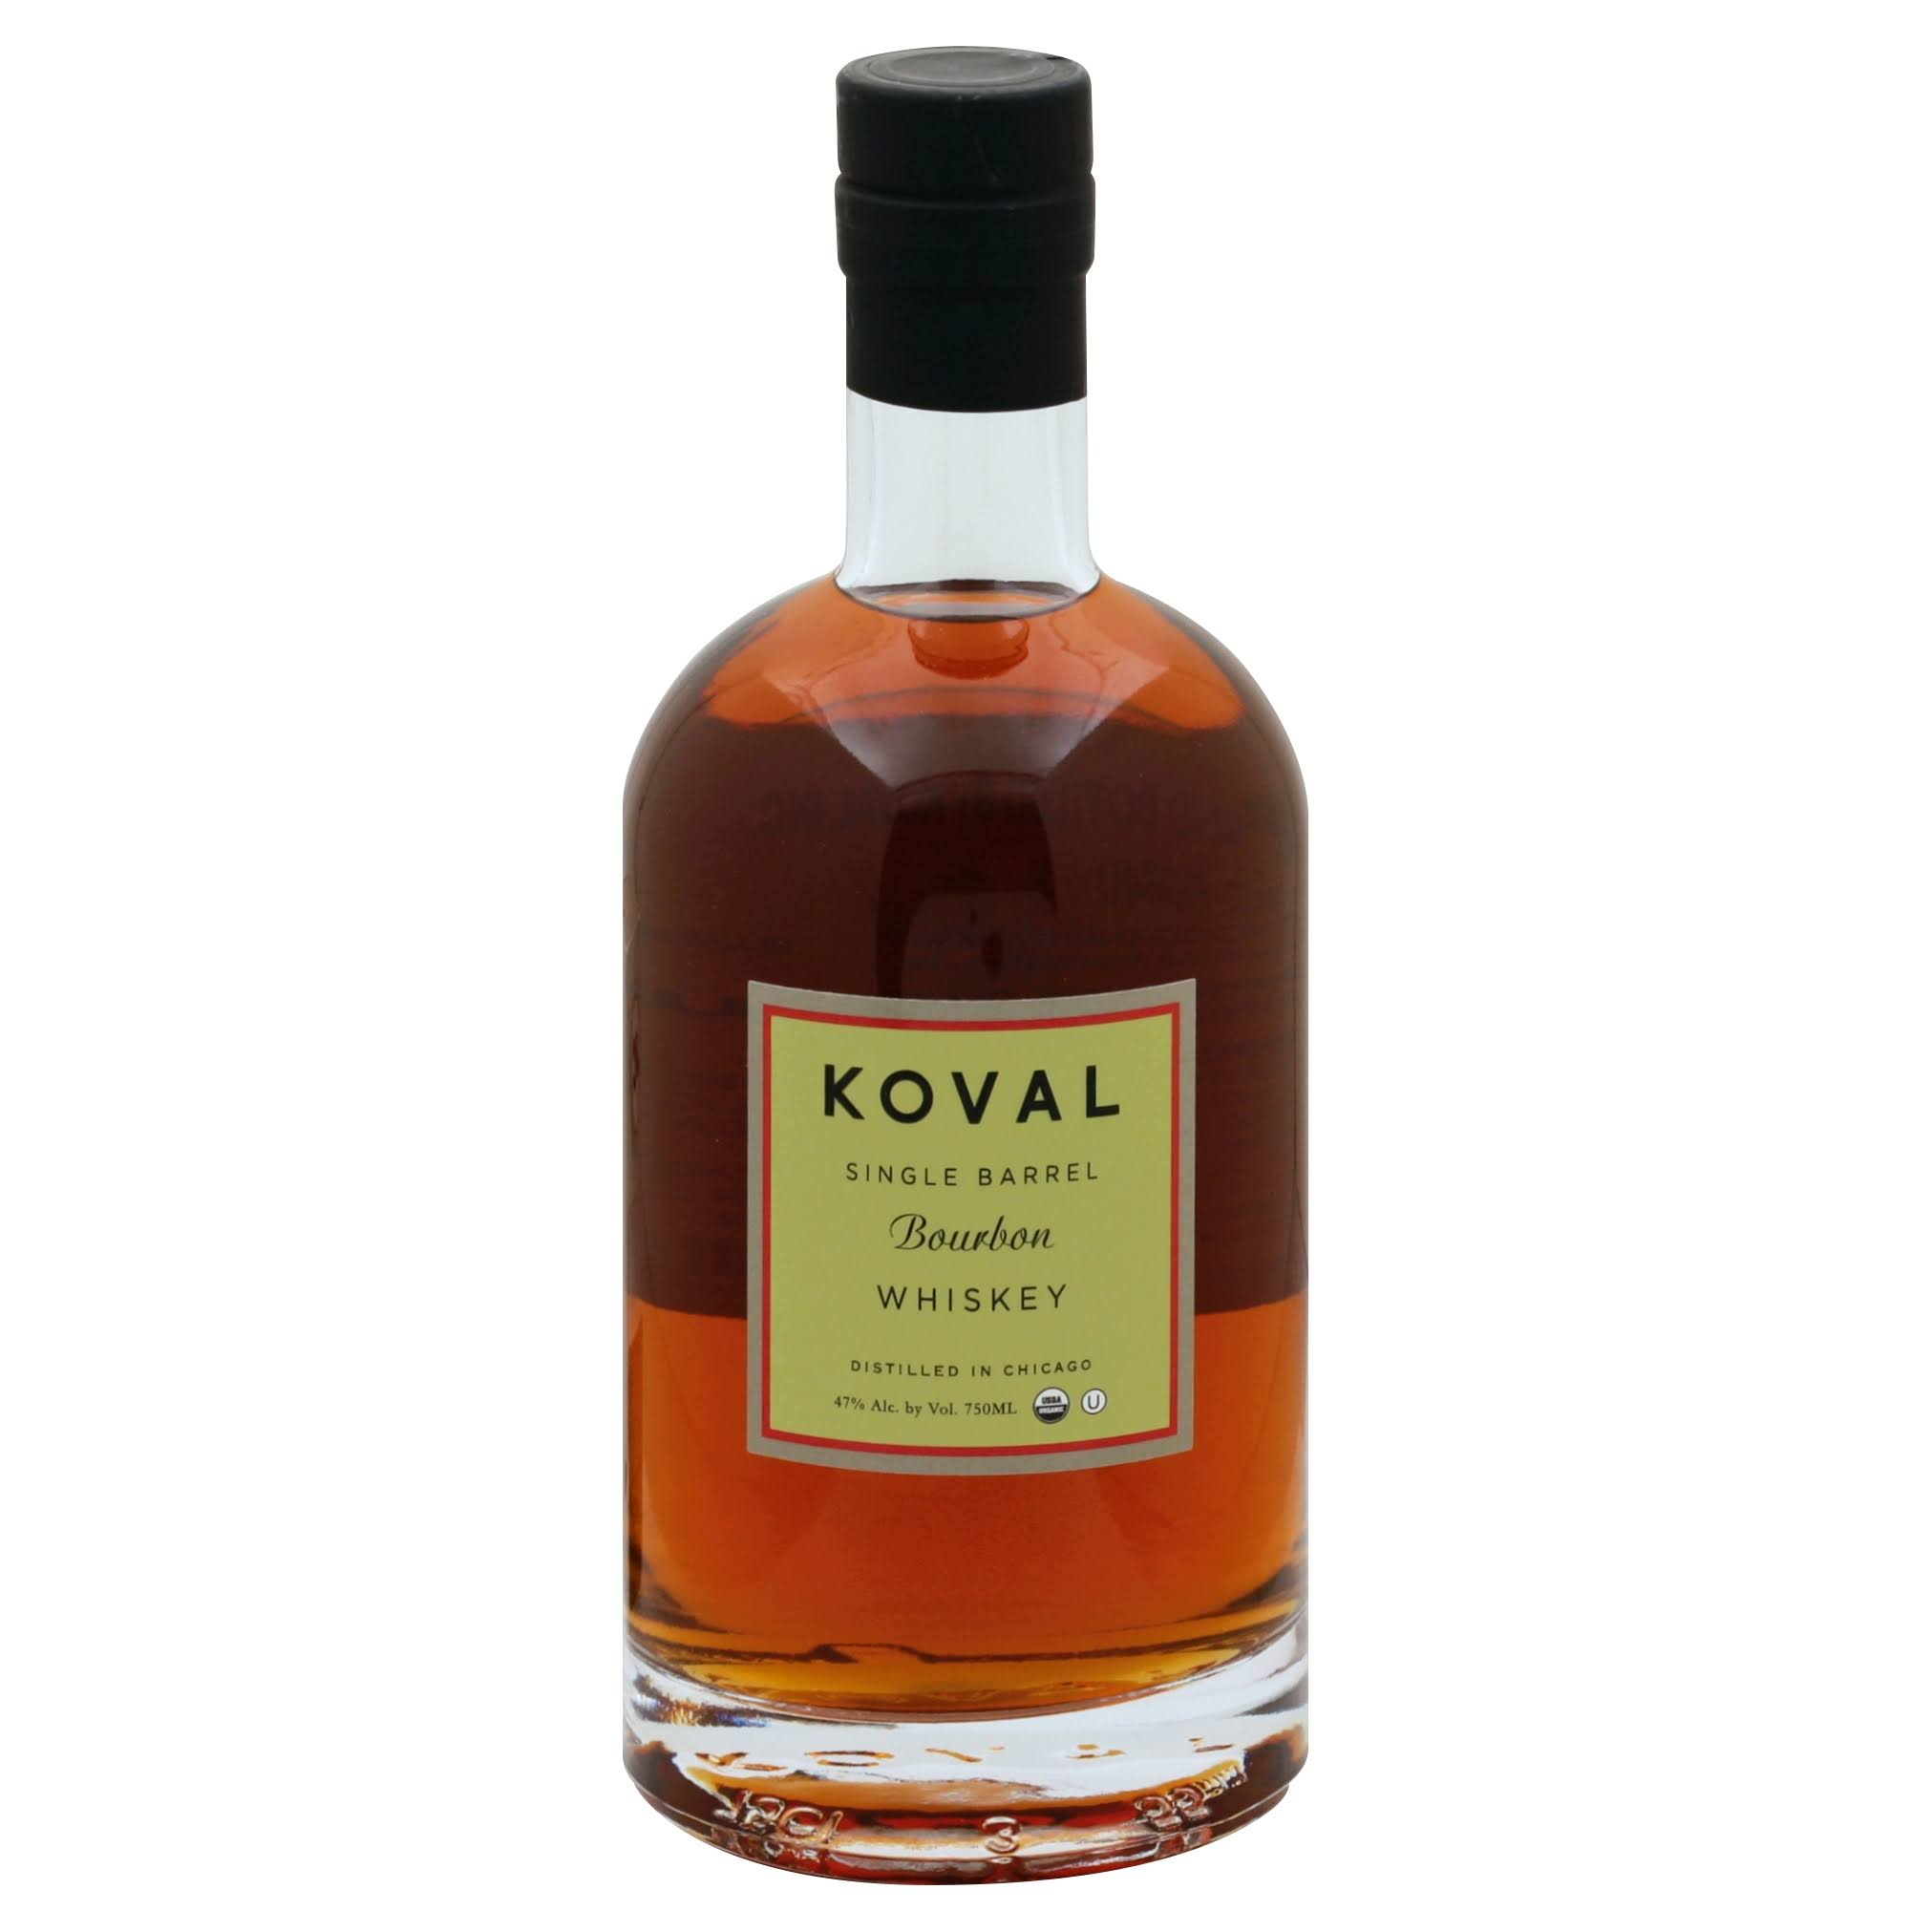 Koval Whiskey, Bourbon, Single Barrel - 750 ml